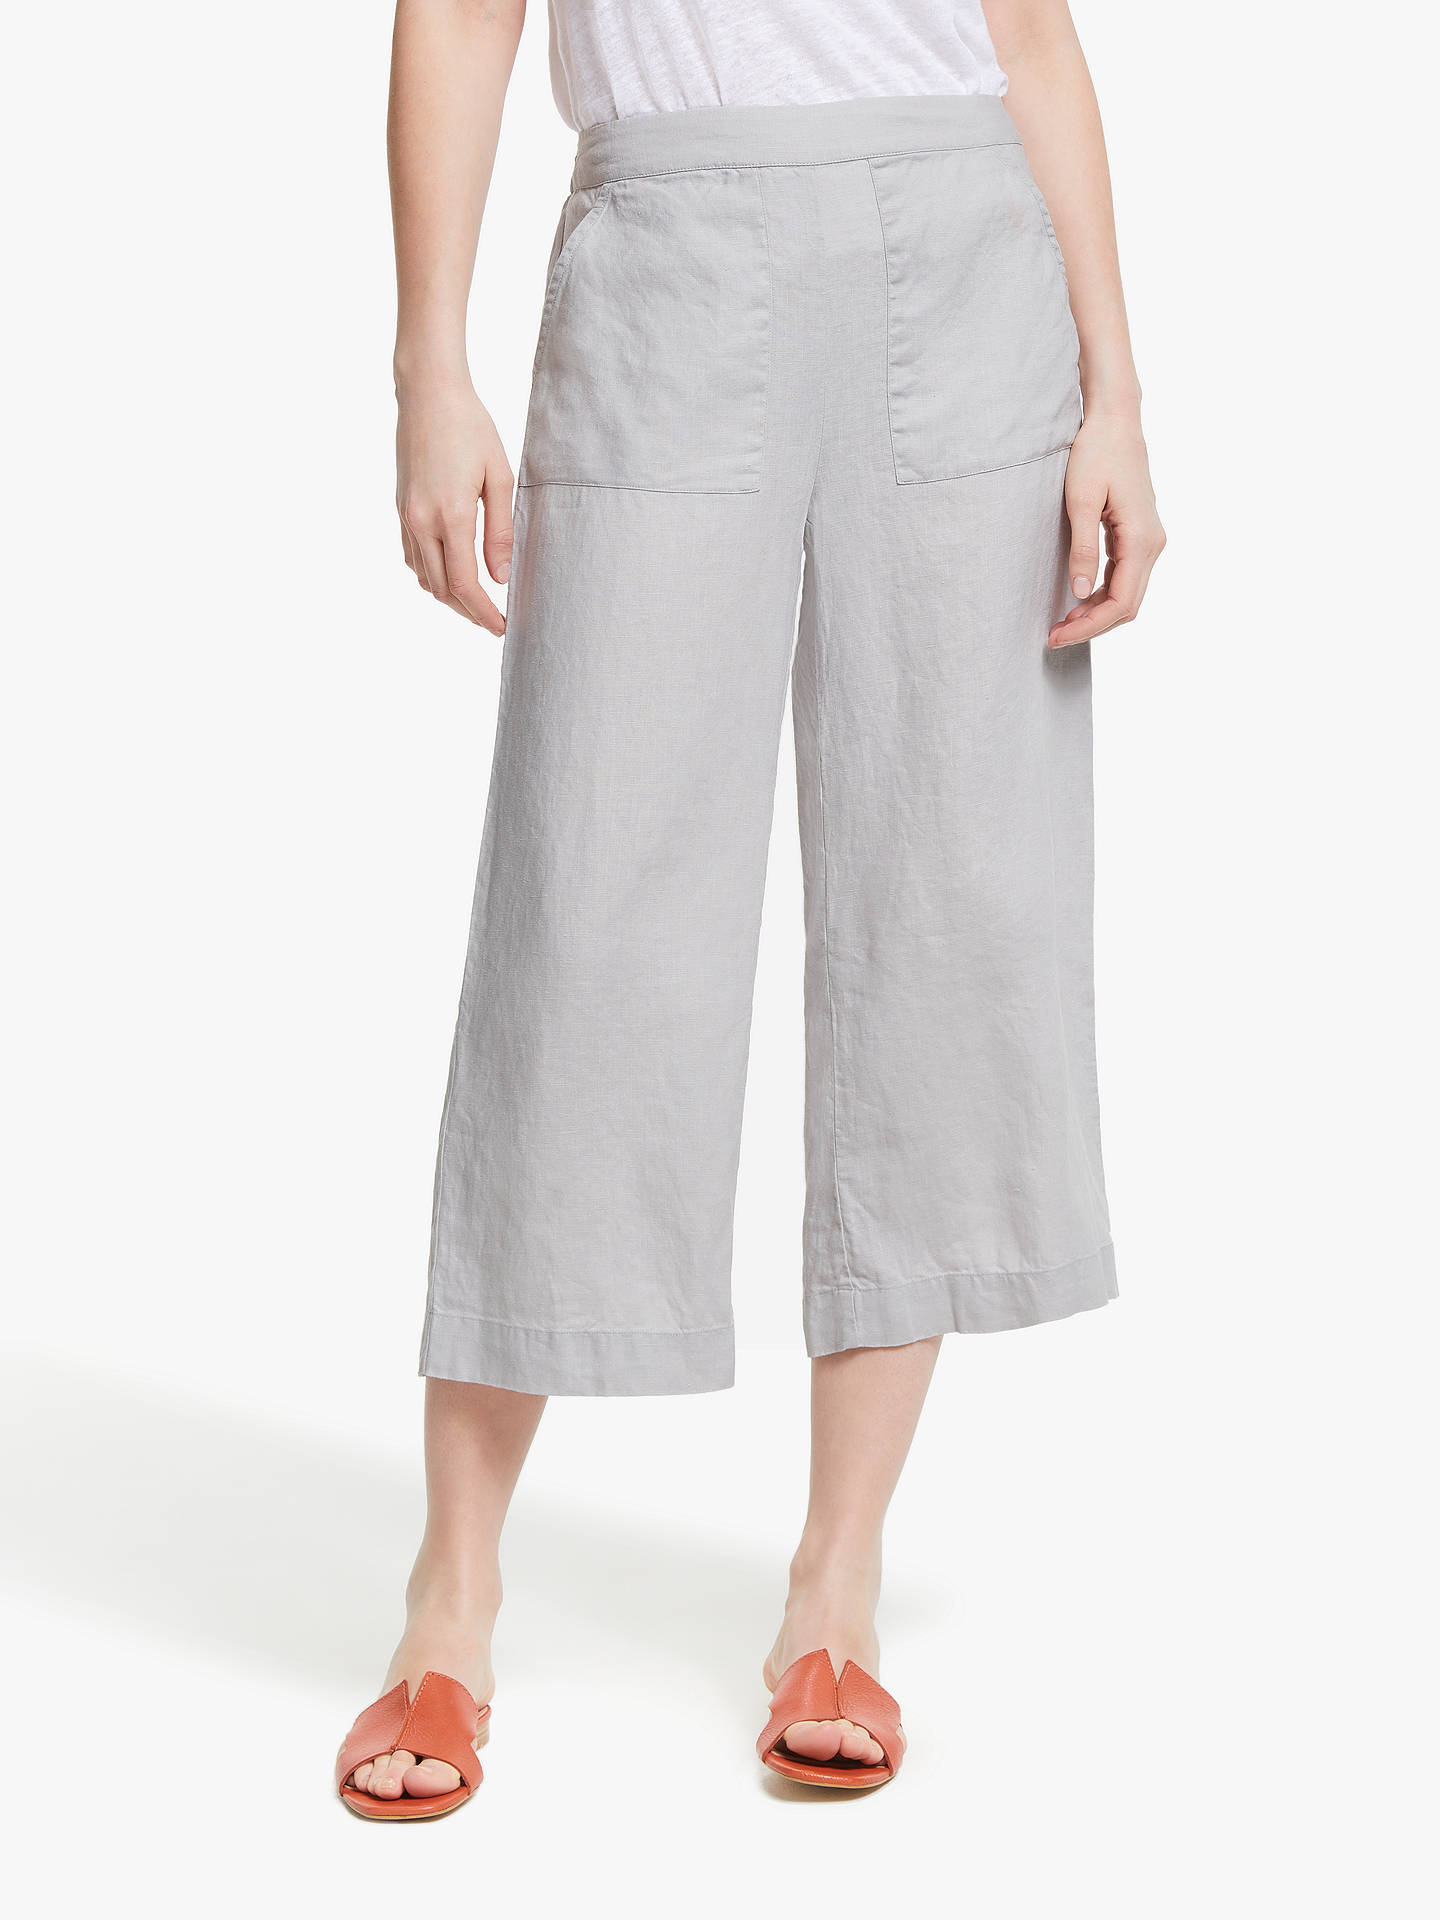 Buy John Lewis & Partners Linen Safari Crop Trousers, Light Grey, 8 Online at johnlewis.com